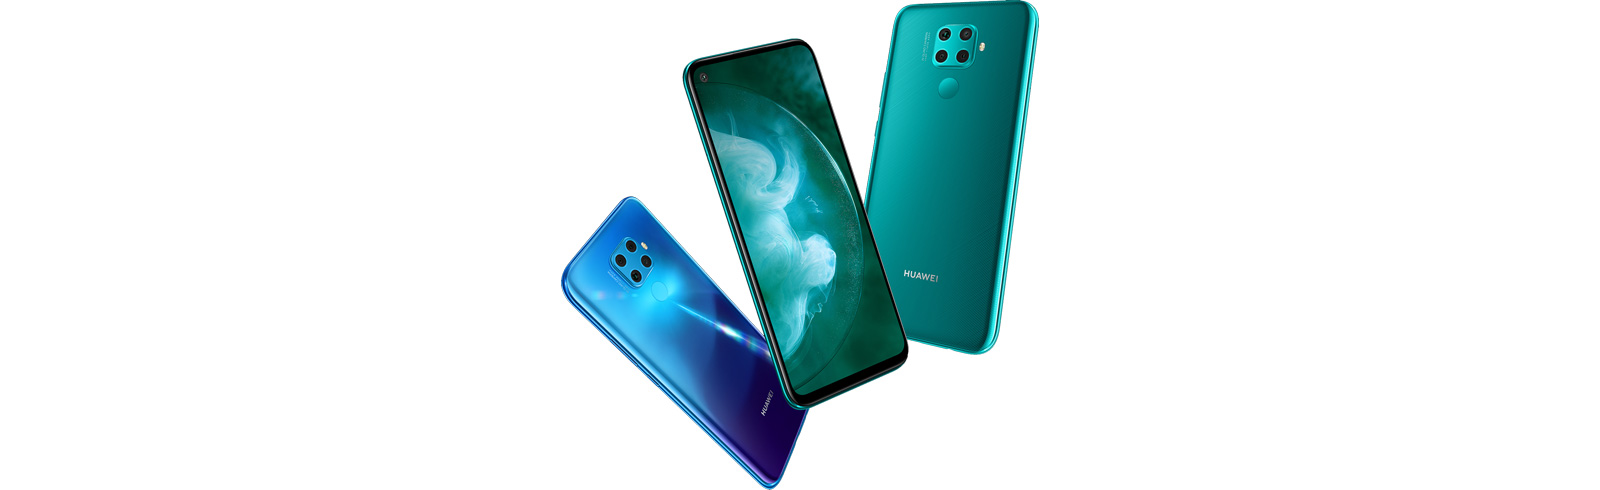 Huawei launches the nova 5z in China